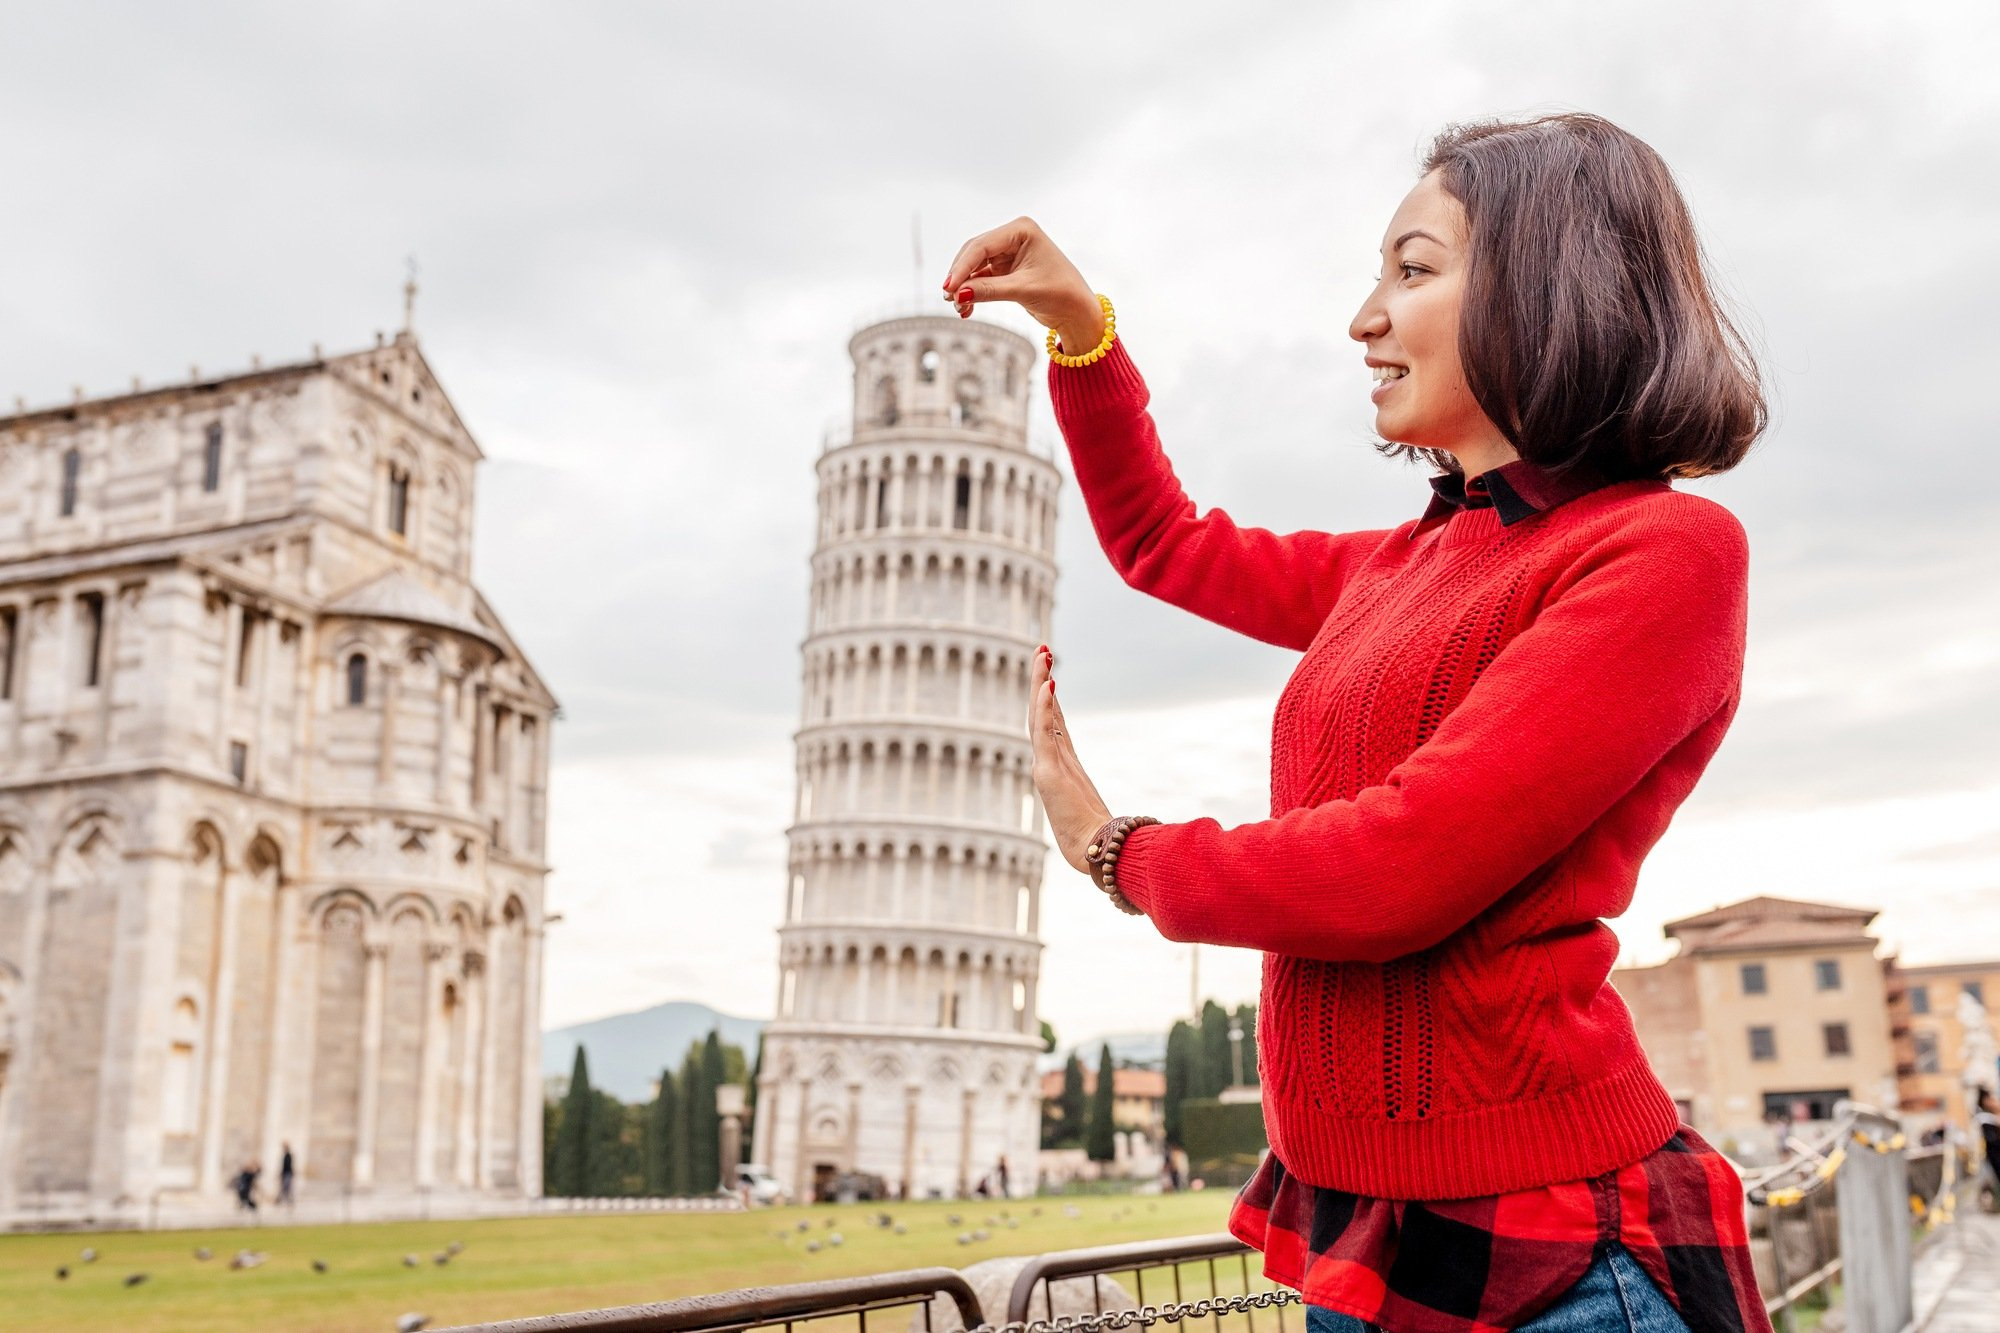 Tourists love to pretend to hold up the Leaning of Tower of Pisa